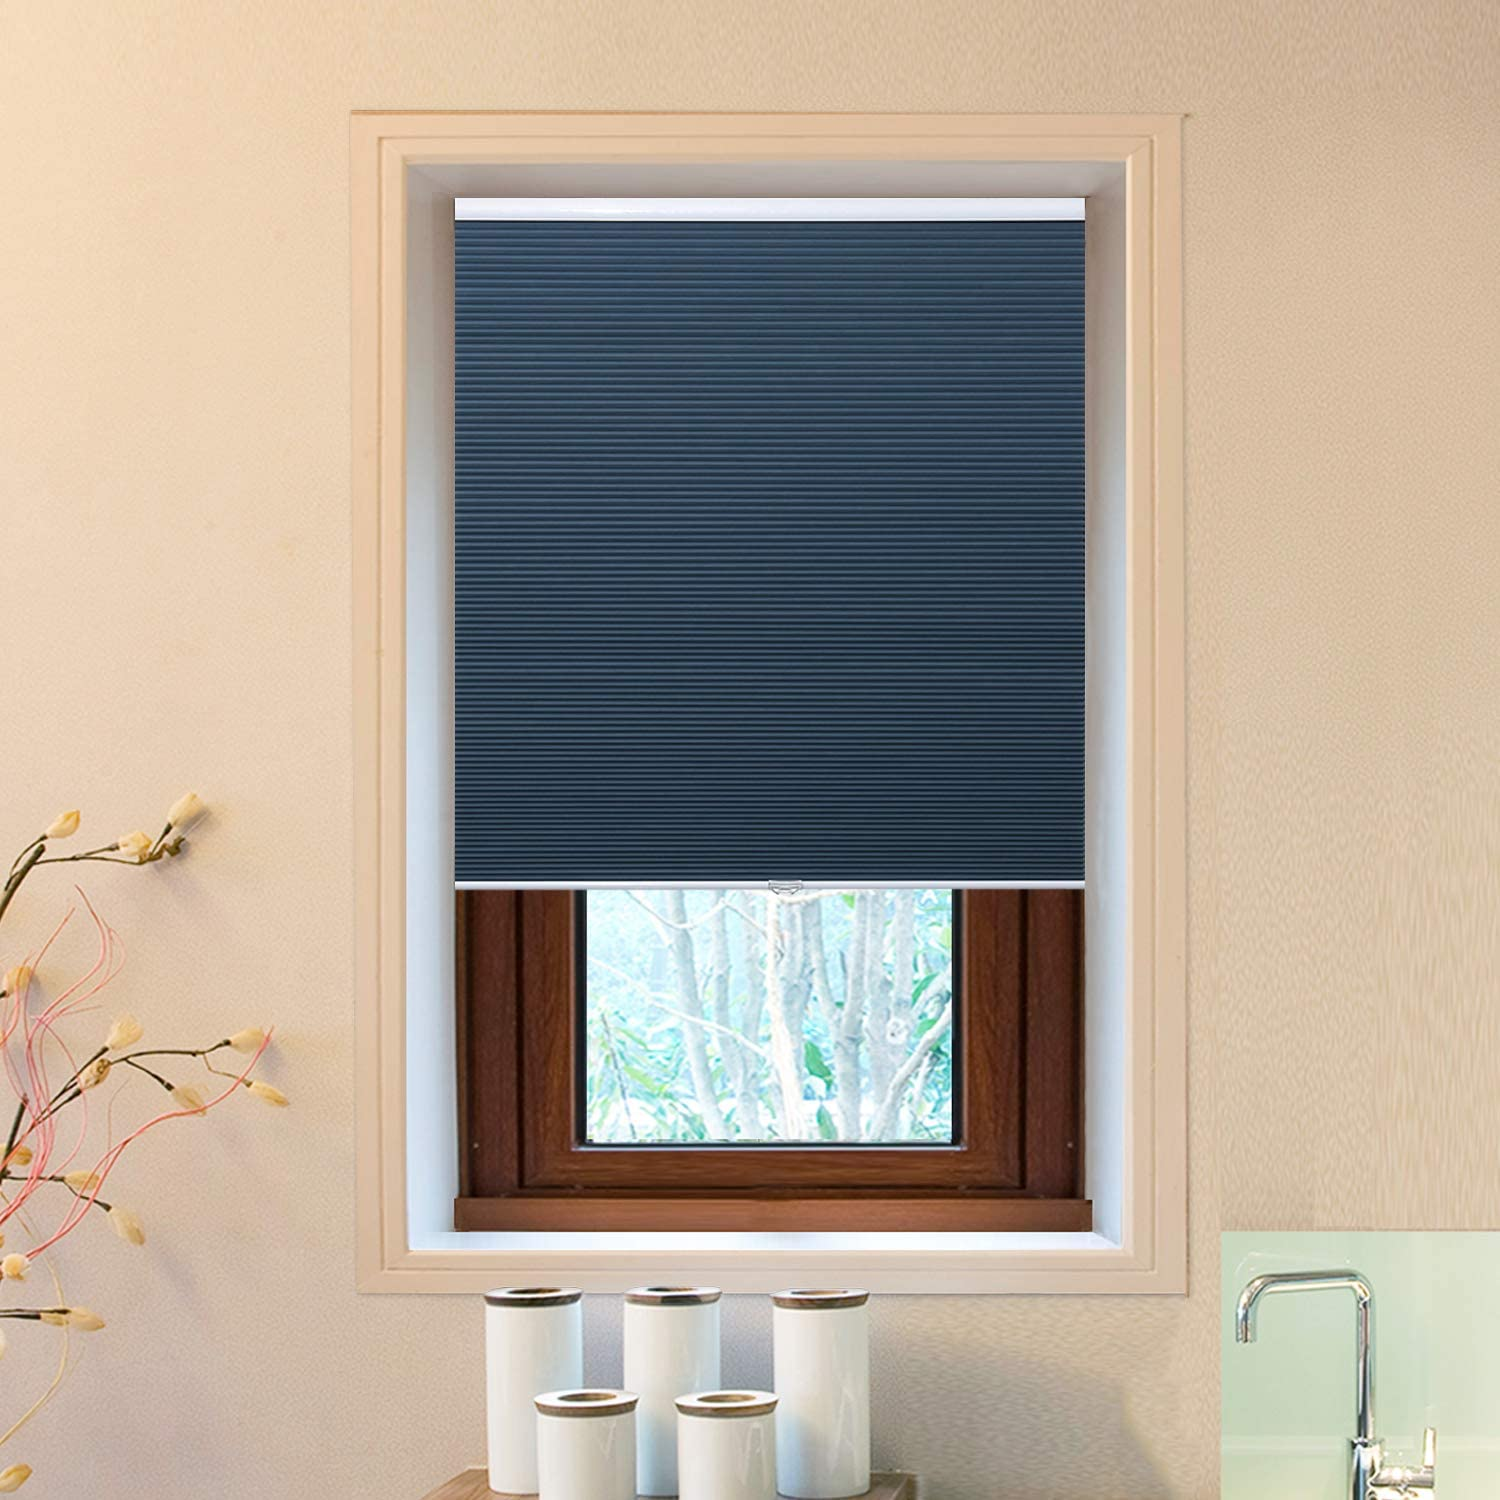 """Cellular Window Shades (Blackout) Cordless Room Darkening Blinds and Shades for Windows, Bedroom, Home (Blue 24"""" W x 36"""" H)"""